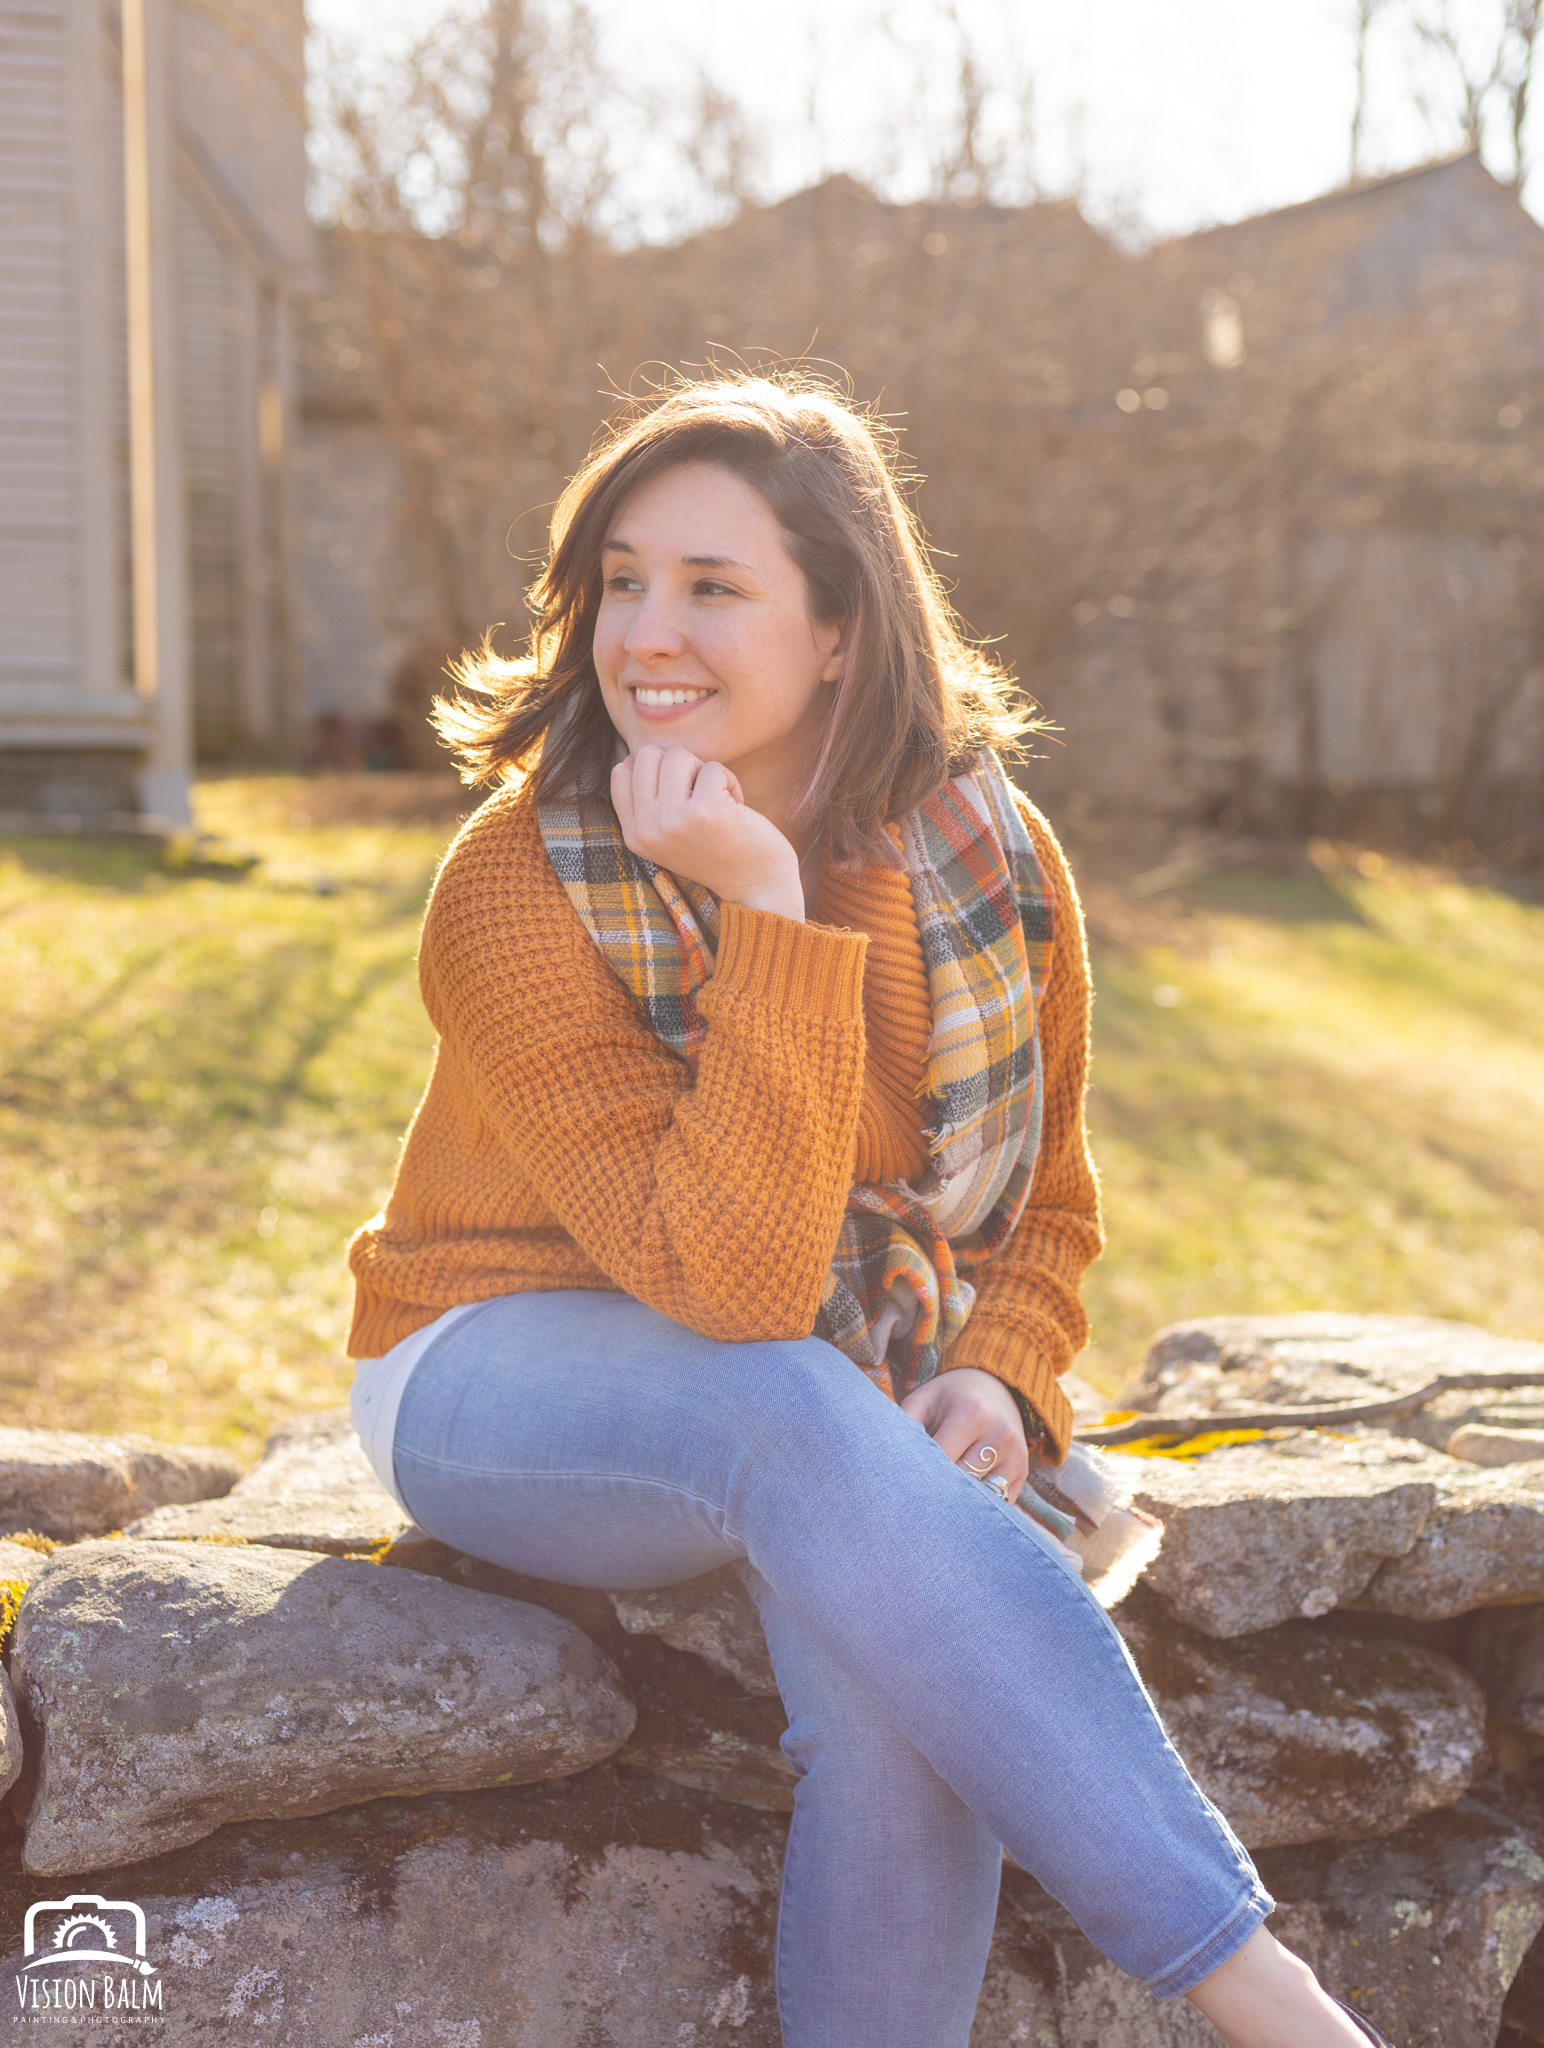 Professional fall portrait photography of Kayla Thornquist wearing an orange sweater in the park photographed by Vision Balm in Charleston, SC.